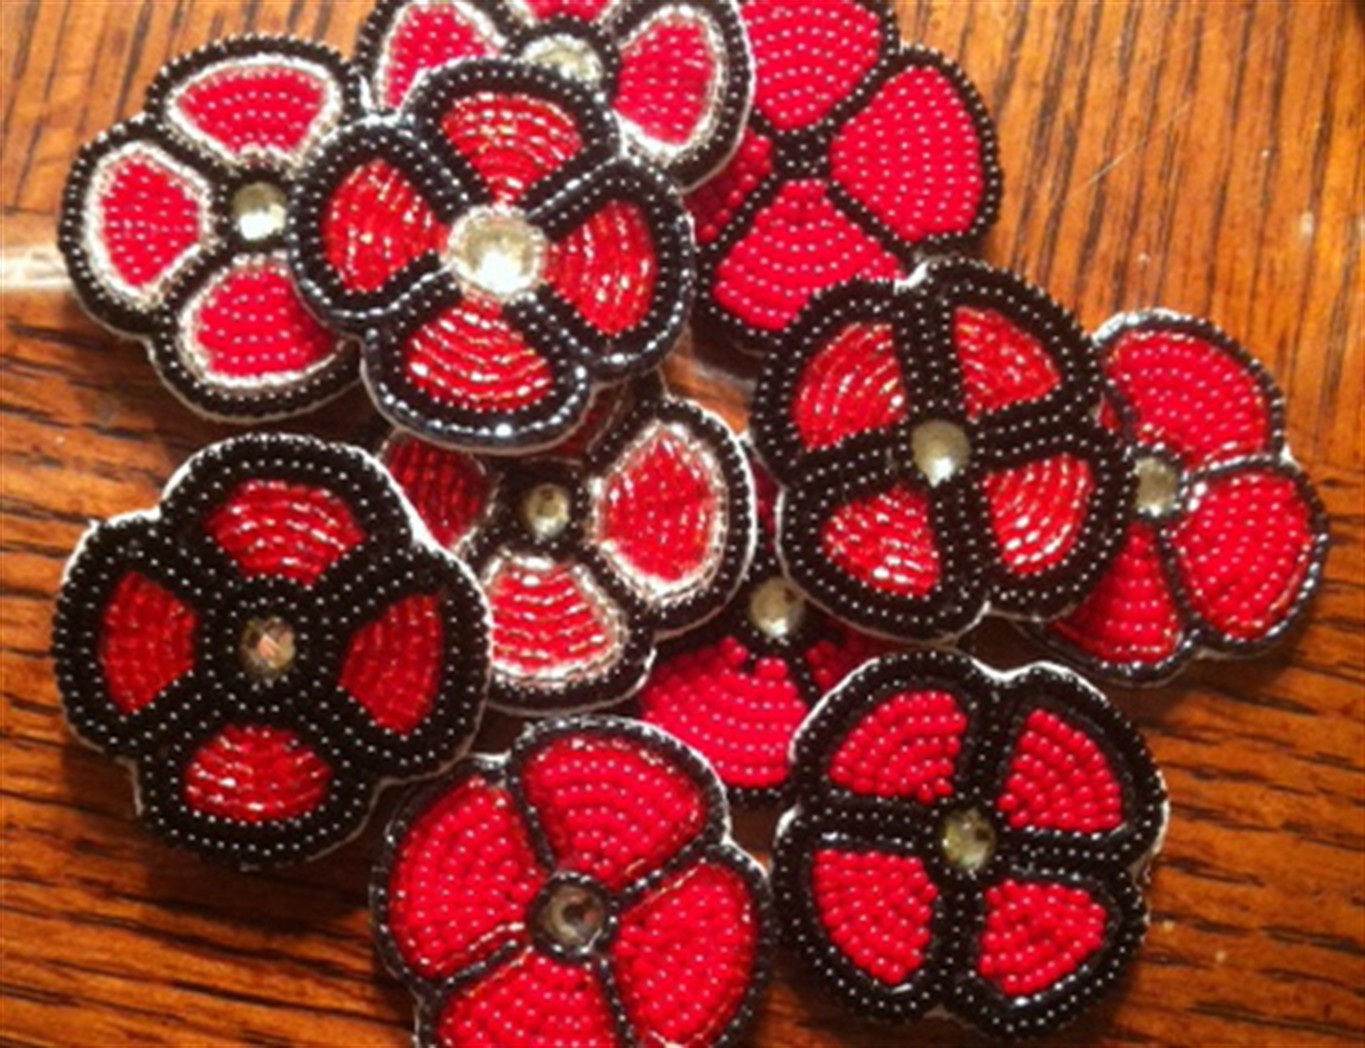 hand made poppies proudly worn by some aboriginal veterans to show